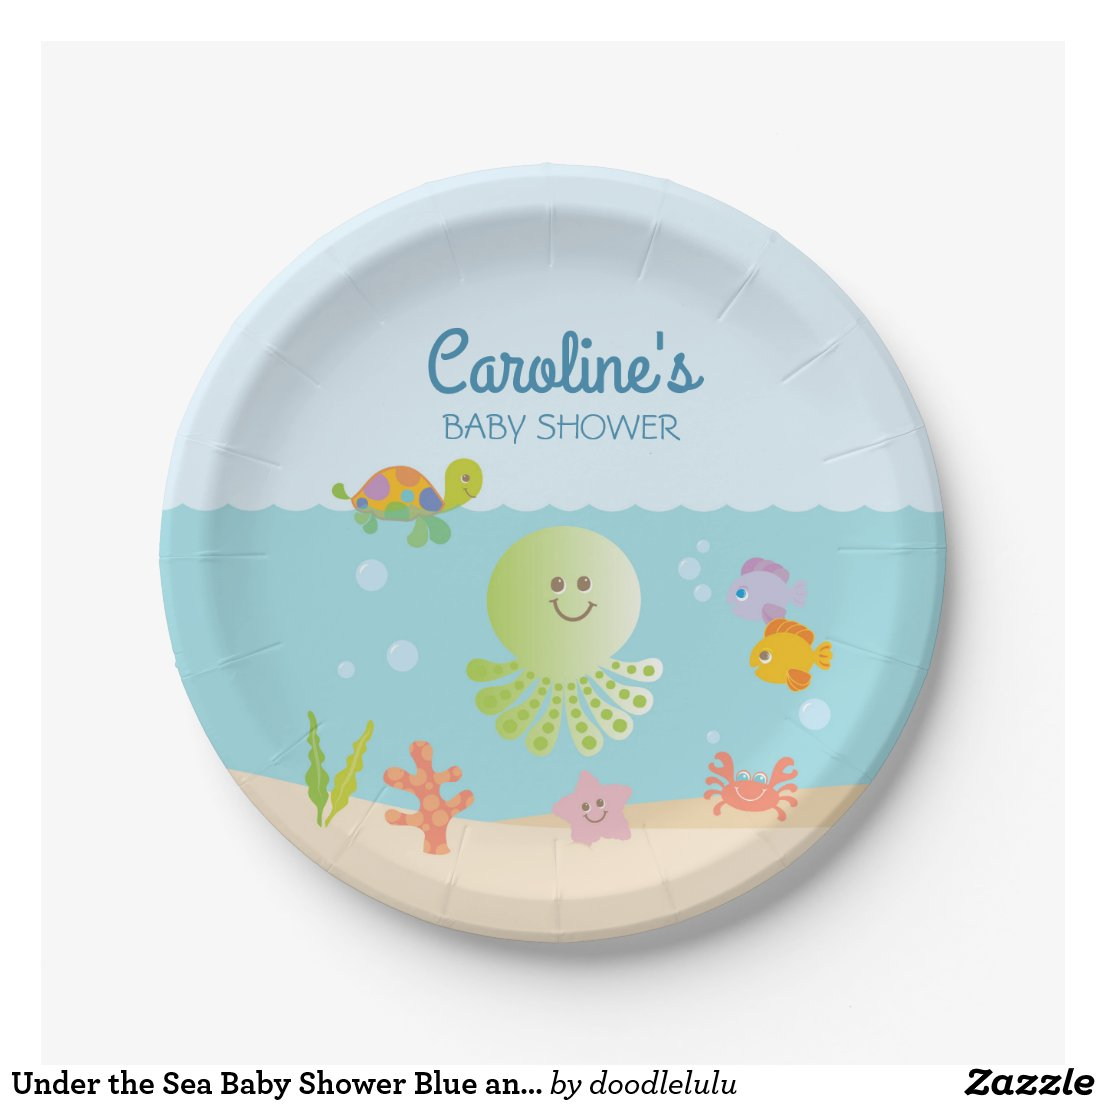 Under the Sea Baby Shower Blue and Green Paper Plate